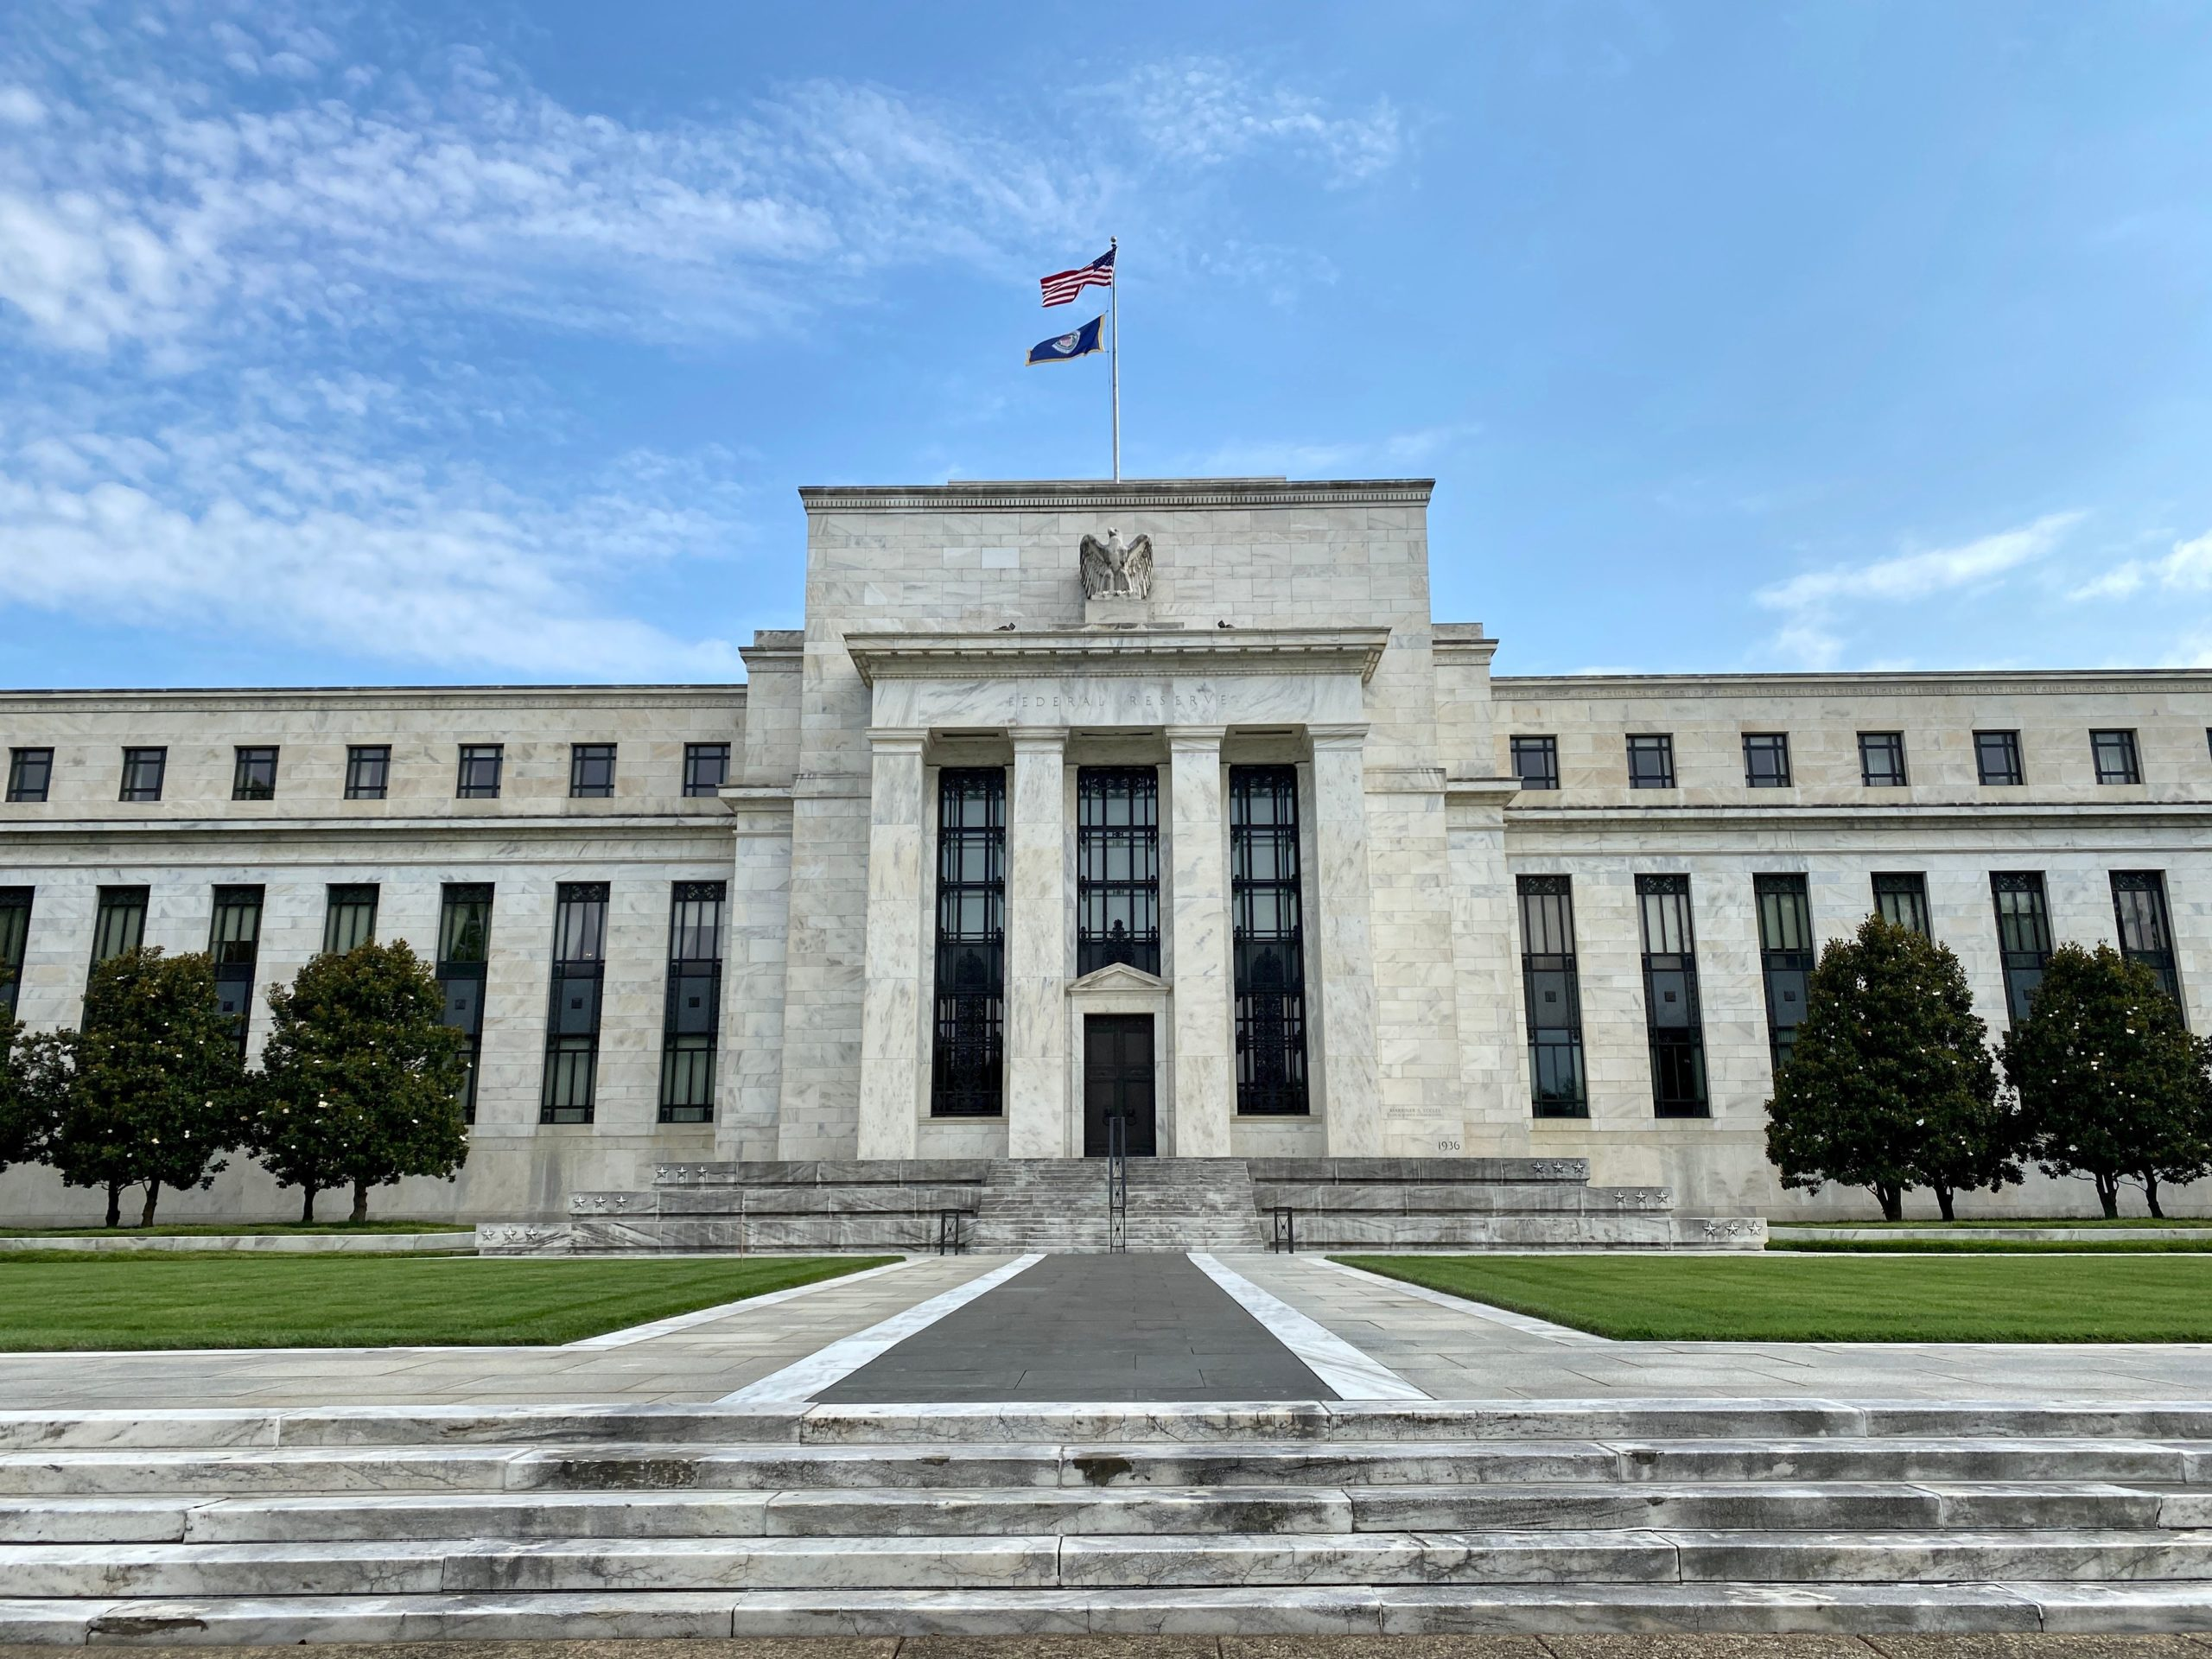 The Federal Reserve Board building is viewed on July 1, 2020 in Washington,DC. - The world's largest economy is showing signs it is rebounding faster than expected from the damage inflicted by the coronavirus pandemic, but US officials on June 30, 2020 signaled more aid may be needed to solidify the comeback. (DANIEL SLIM/AFP via Getty Images)